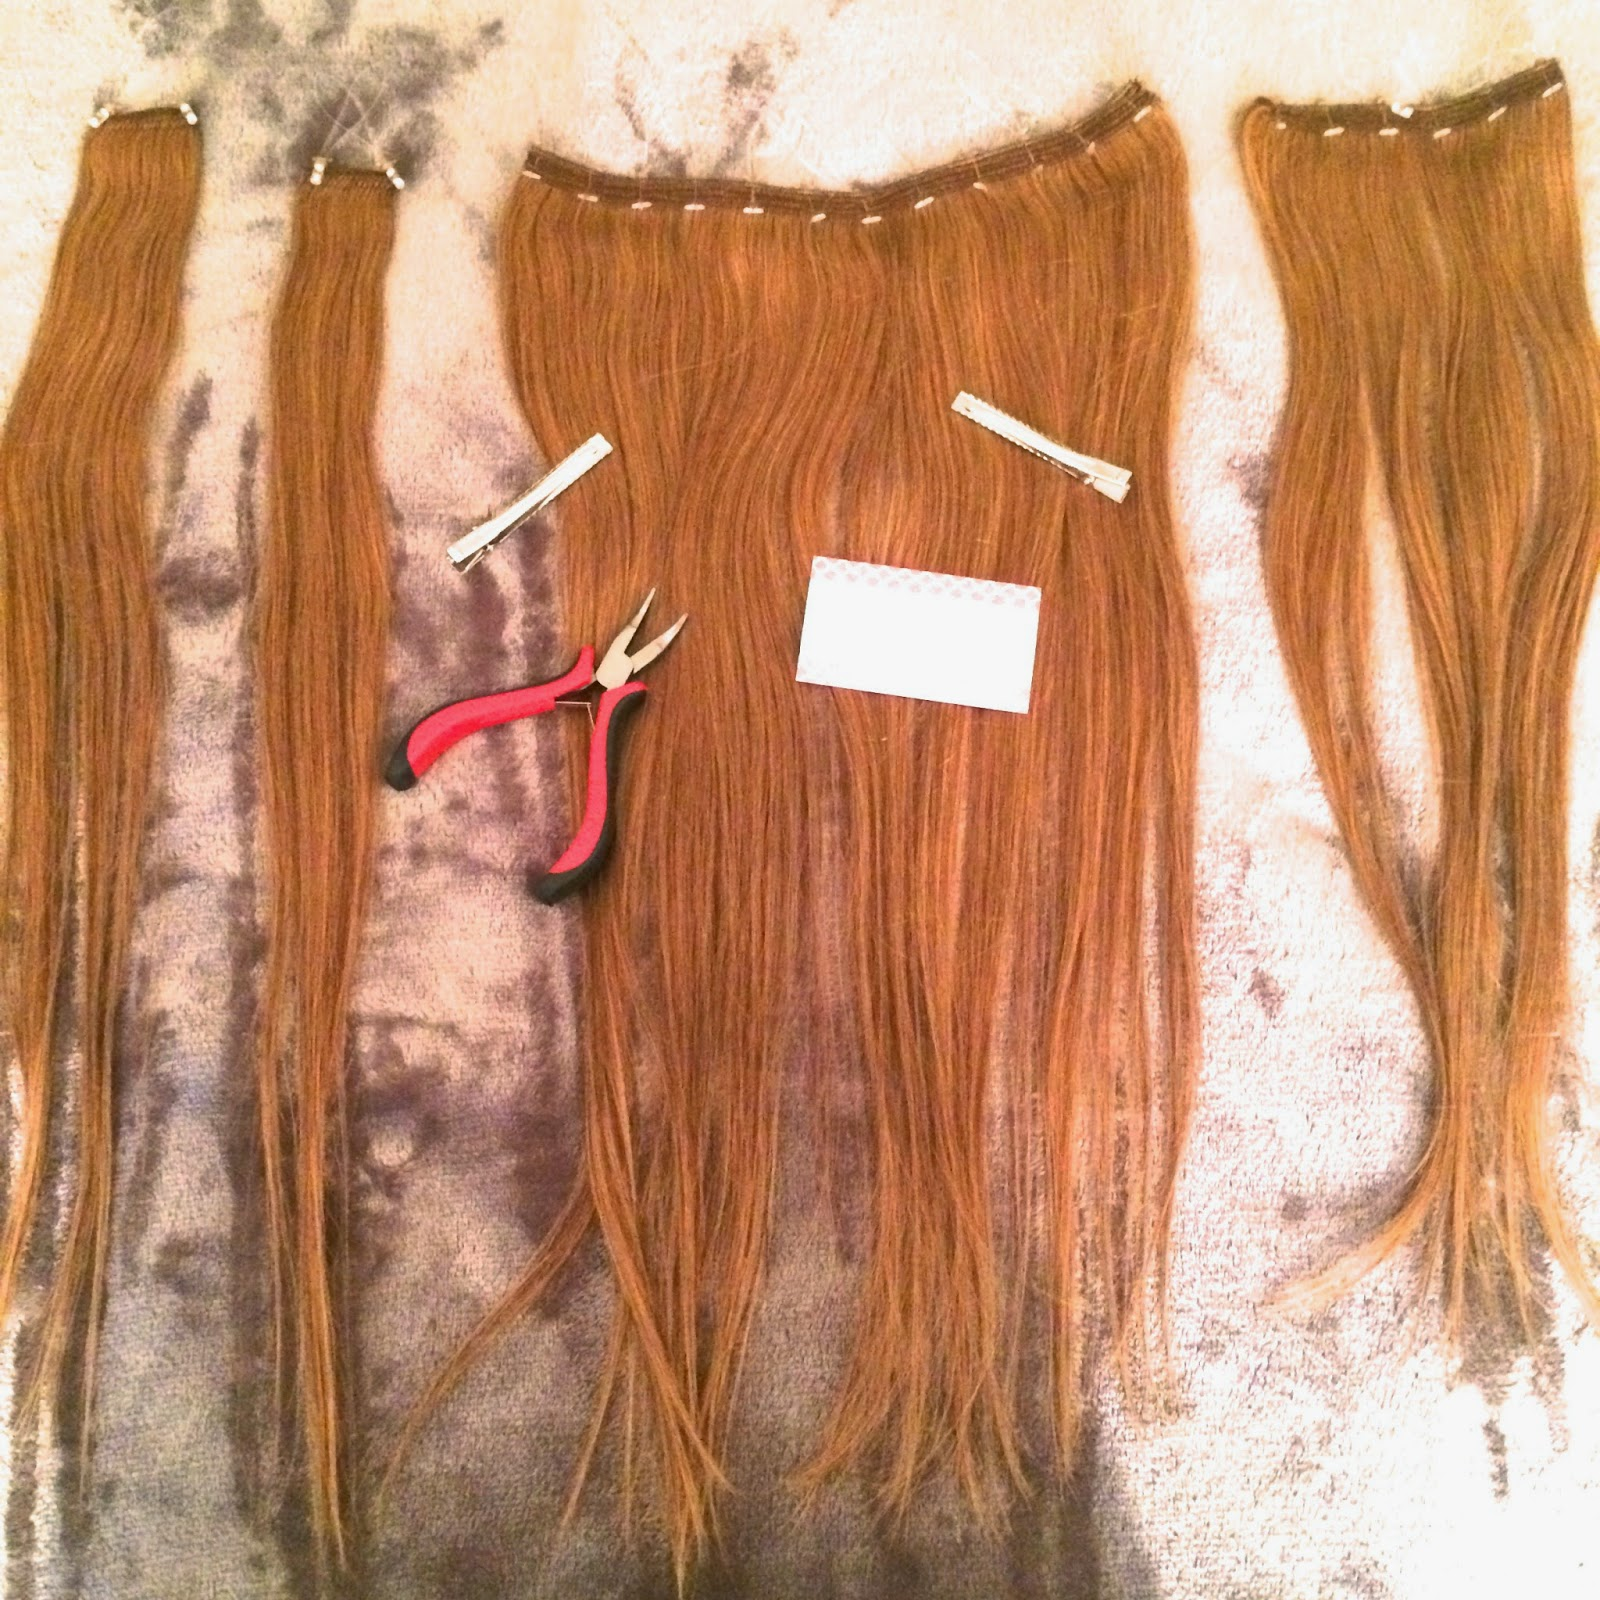 Cult nails blog lockn long hair extensions review lockn long hair extensions fine glam set pmusecretfo Image collections